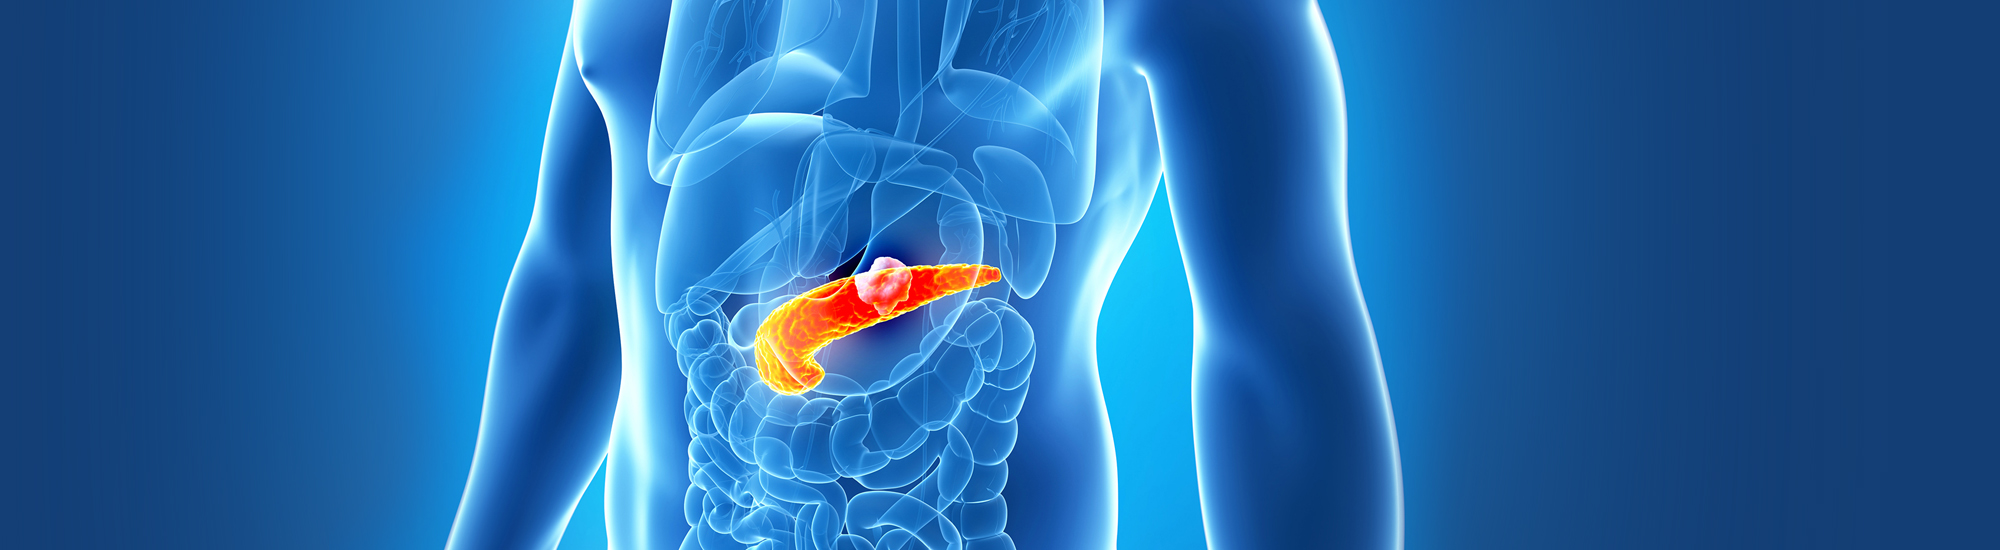 Ayurvedic treatment for Pancreatitis FAQs